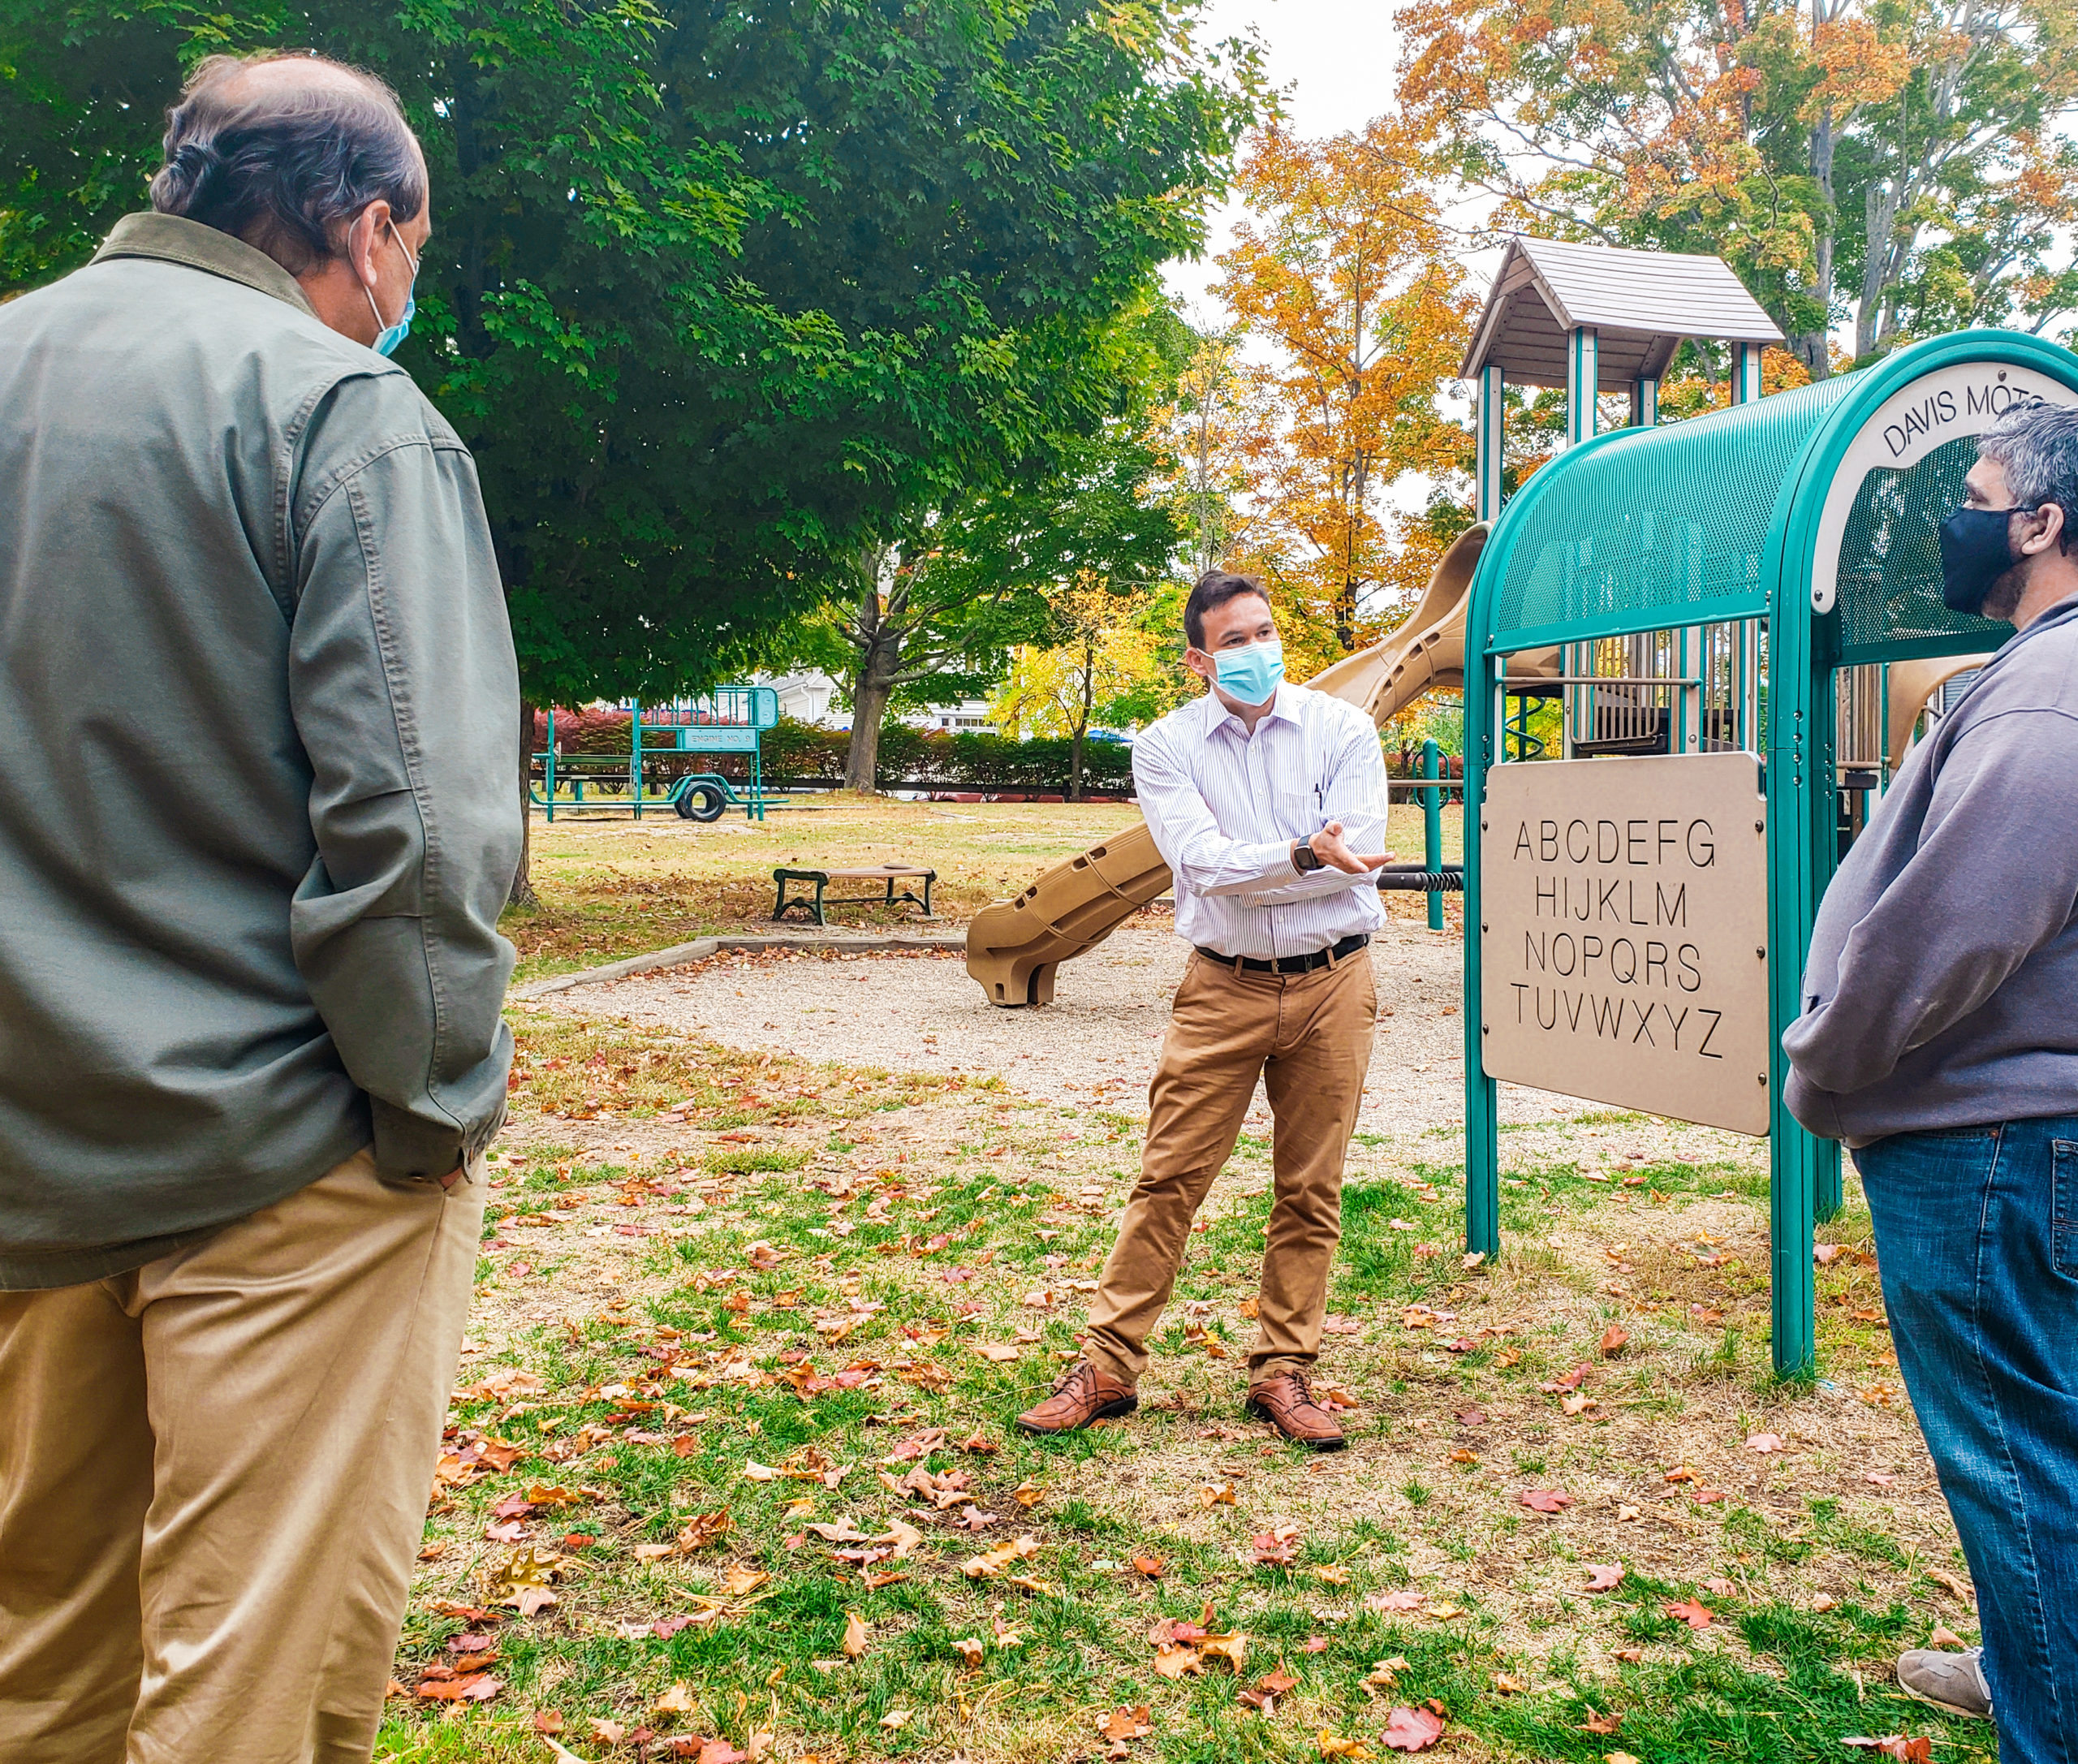 Rep. Sena asks Paul Swydan of Friends of Gardner Field a question about proposed renovation of the park, Acton, MA